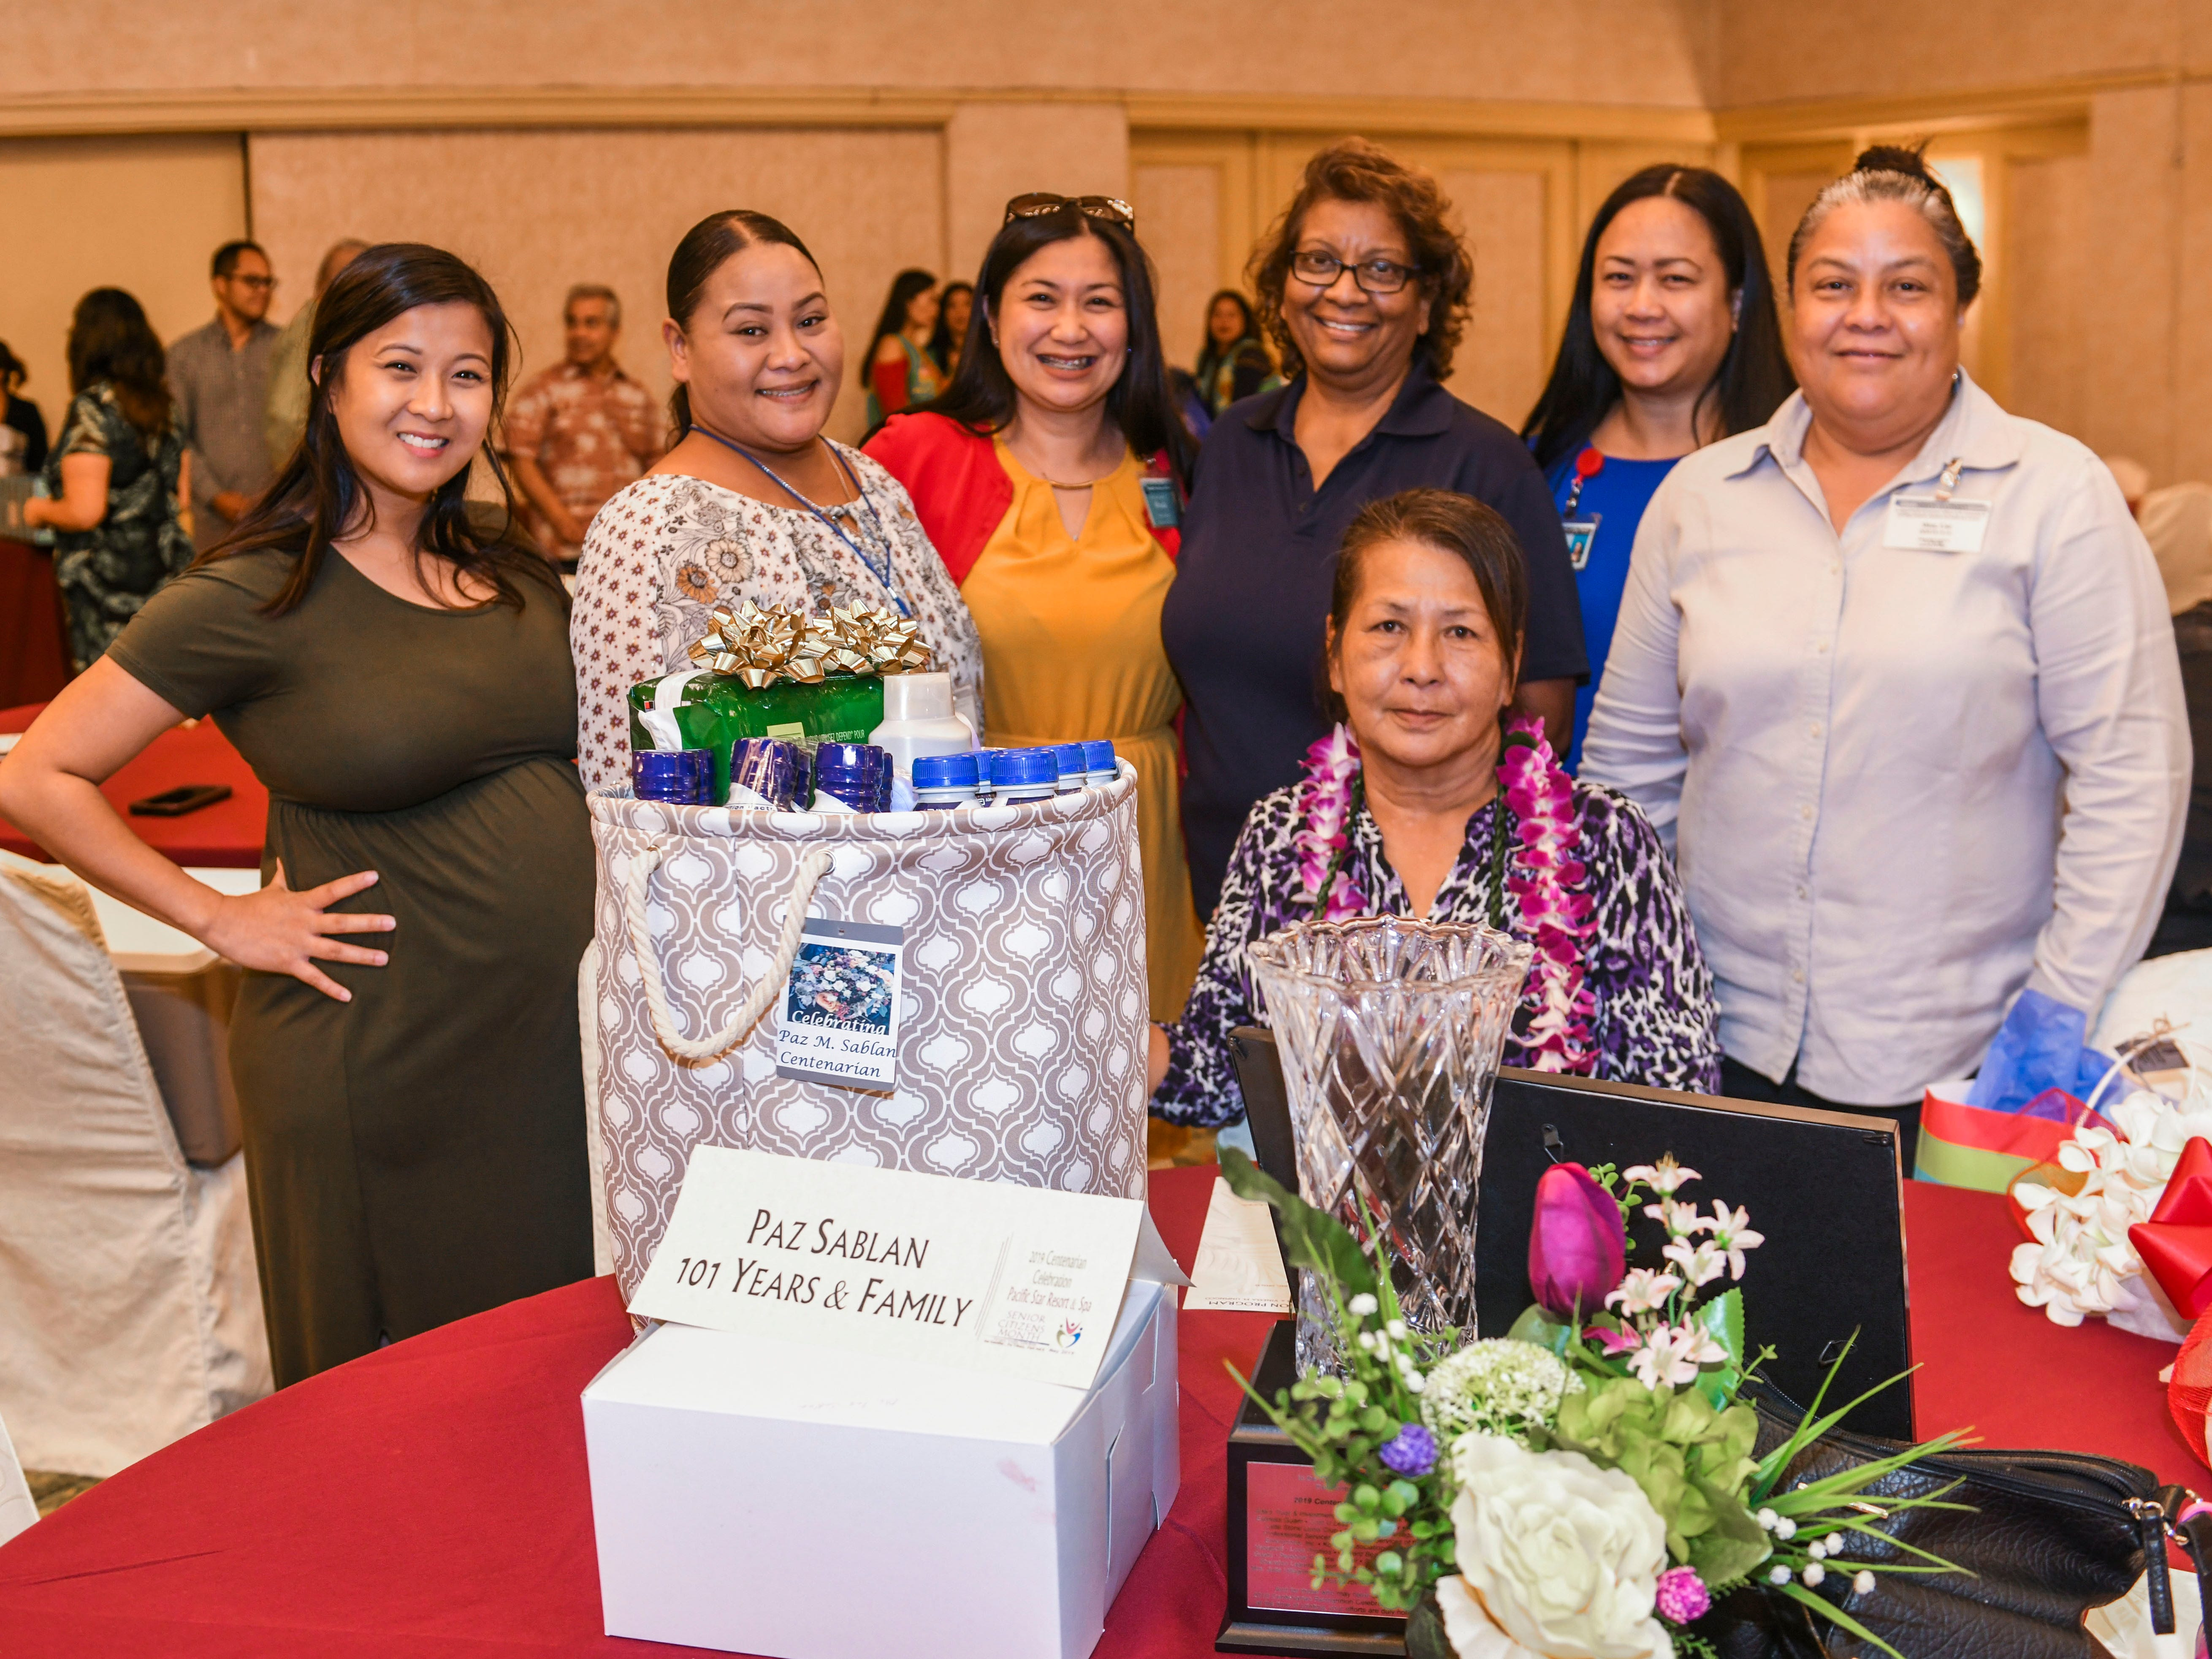 A family representative for centenarian Paz Sablan is presented with gifts for her from the Health Services of the Pacific during the 2019 Centenarian Celebration at the Pacific Star Resort & Spa in Tumon on Thursday, May 9, 2019. The event, hosted by the Department of Public Health and Social Services, was held in conjunction with Senior Citizens Month.